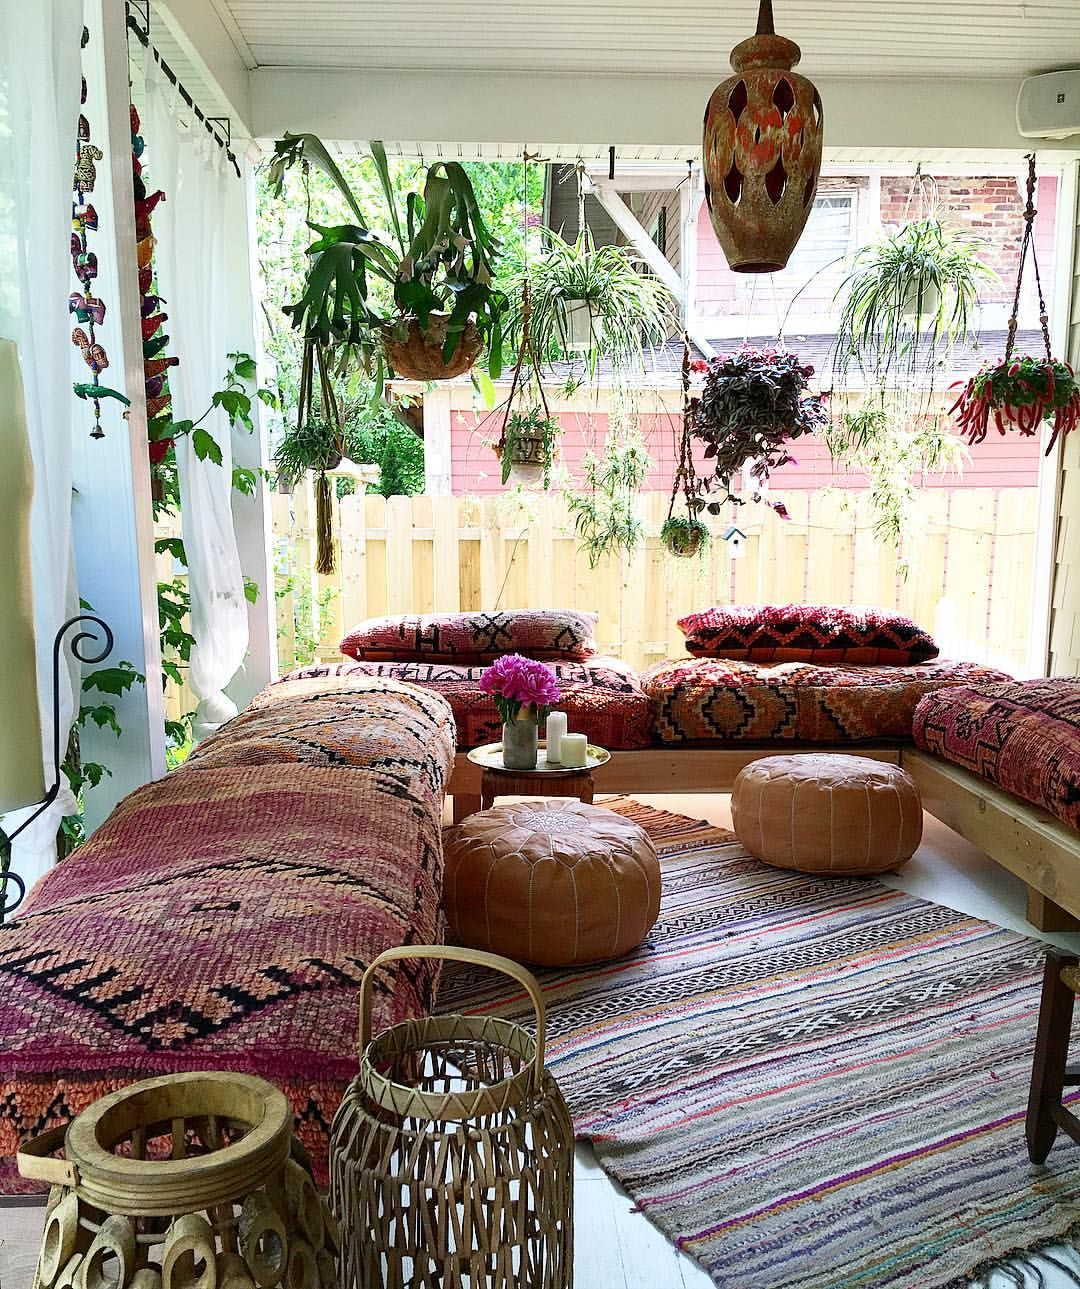 pin on perfect home essentials on boho chic decor living room bohemian kitchen id=20821